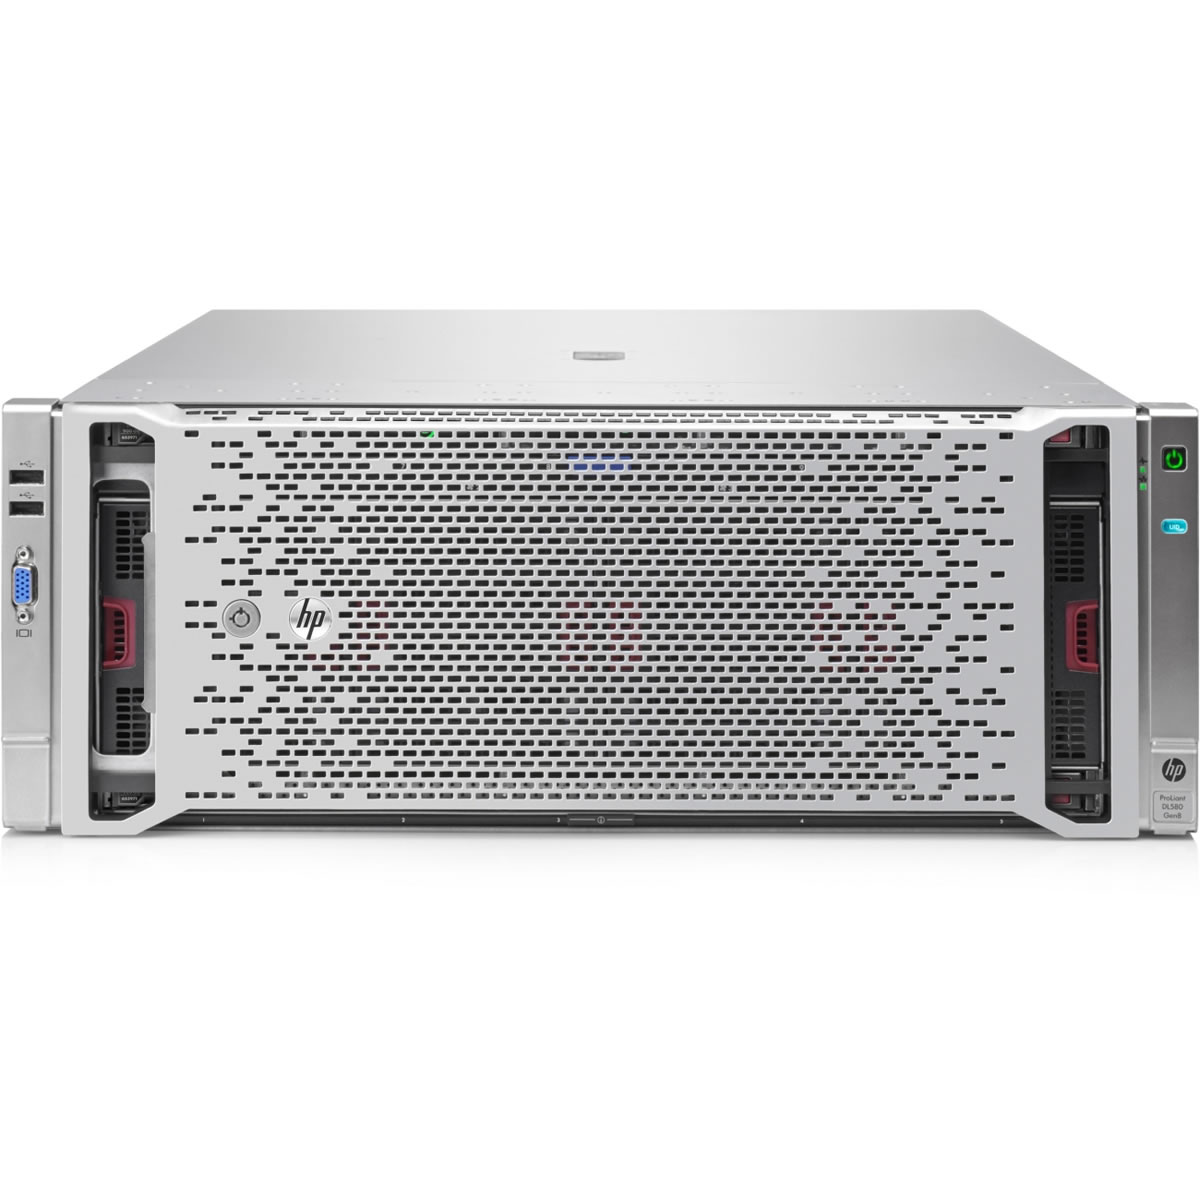 Сервер HP Proliant DL580 Gen8 Rack (4U) 728544-421